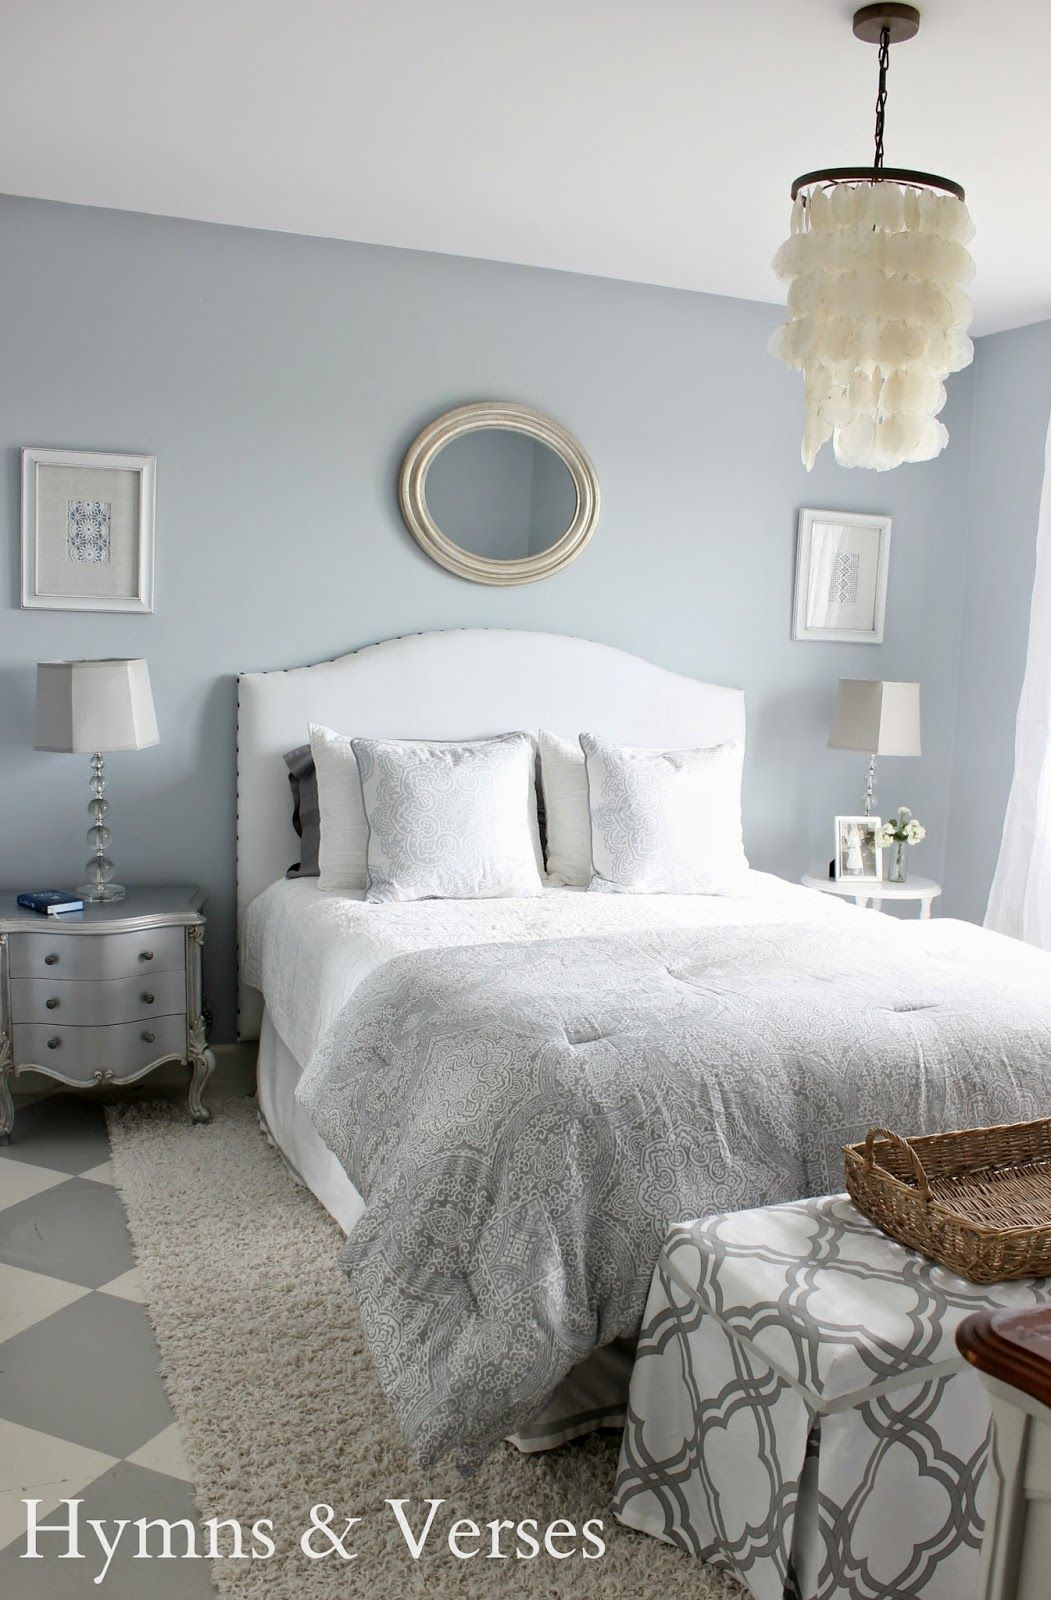 Finally Finished - The Master Bedroom | Master bedroom, Bedrooms and on pink mirrors, tile mirrors, bedroom vintage mirrors, art mirrors, bathroom mirrors, bedroom furniture mirrors, decorate mirrors, dining room mirrors, modern mirrors,